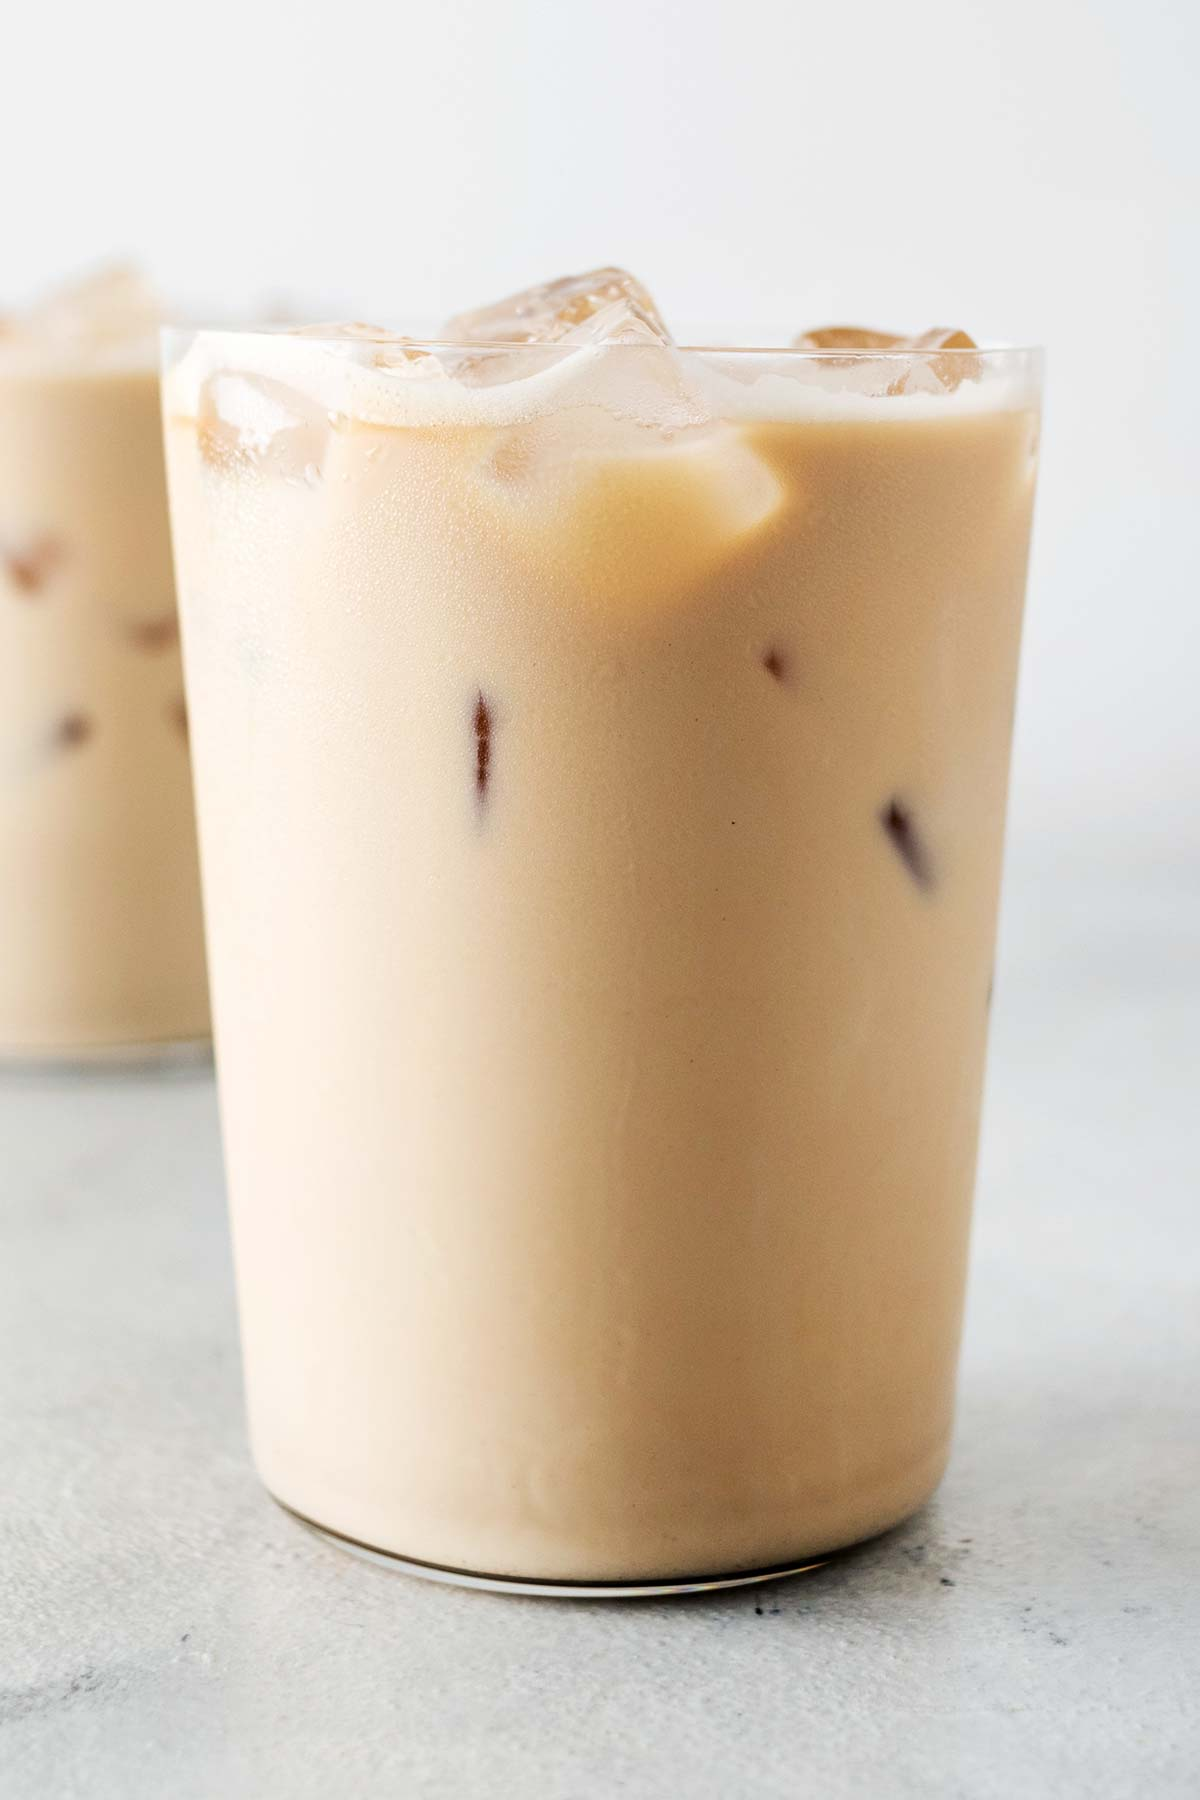 Iced Lattes in glass cups.